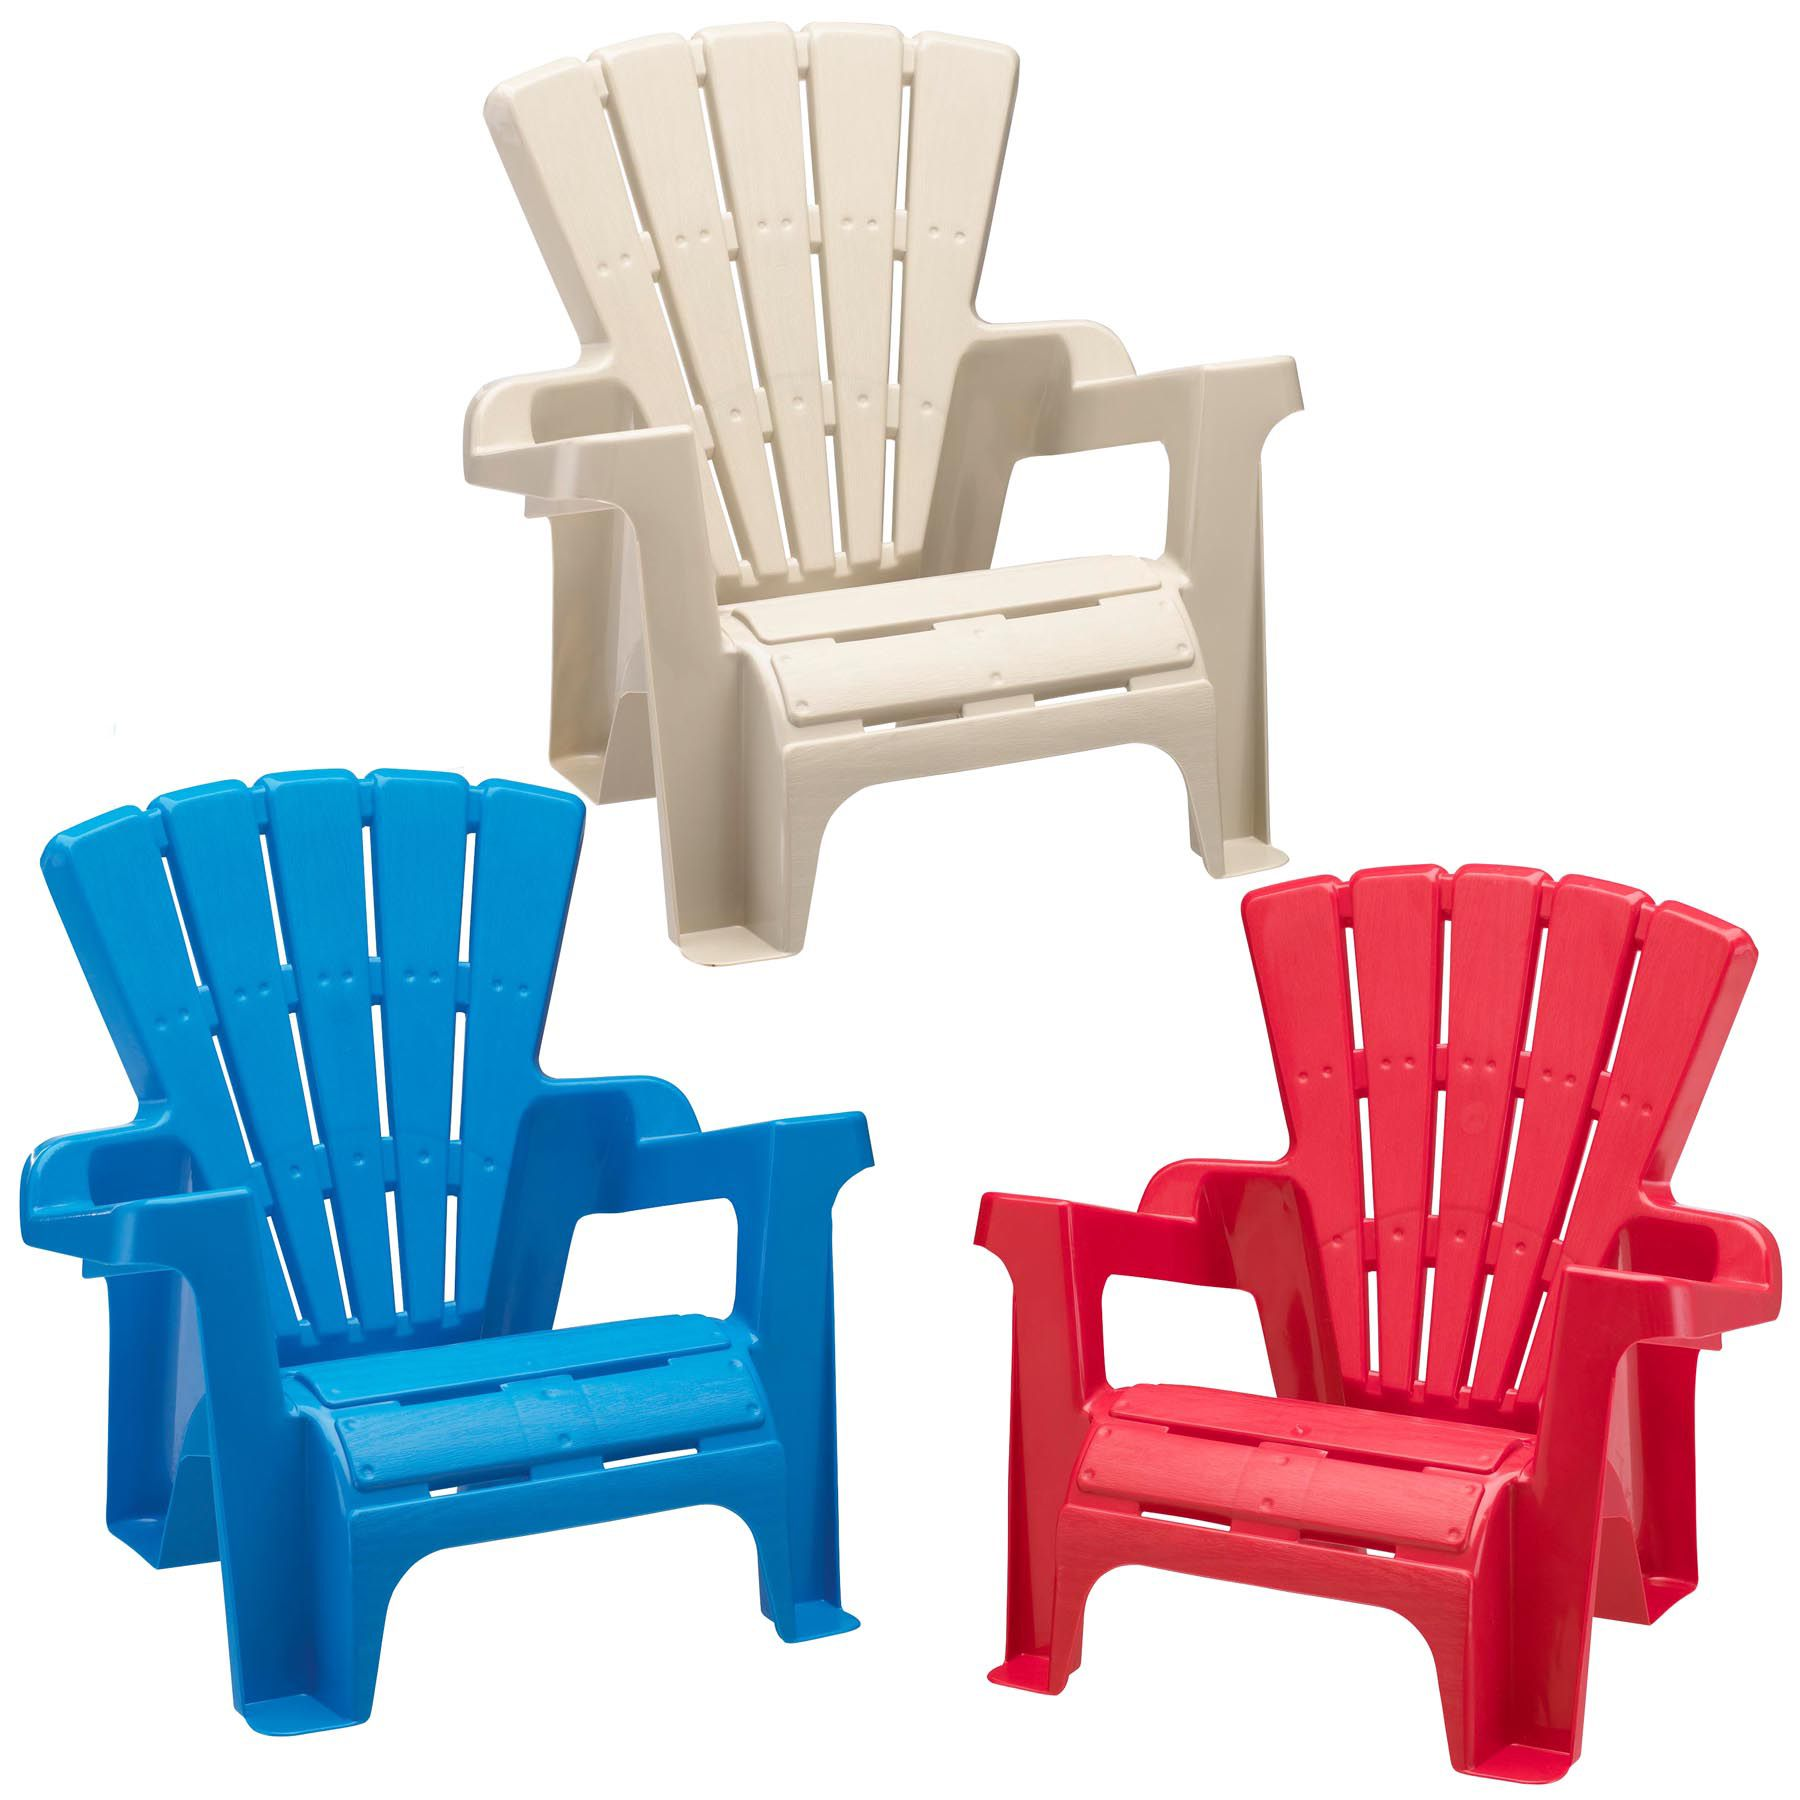 pdx outdoor products adirondack chair plastic wayfair merry chairs faux